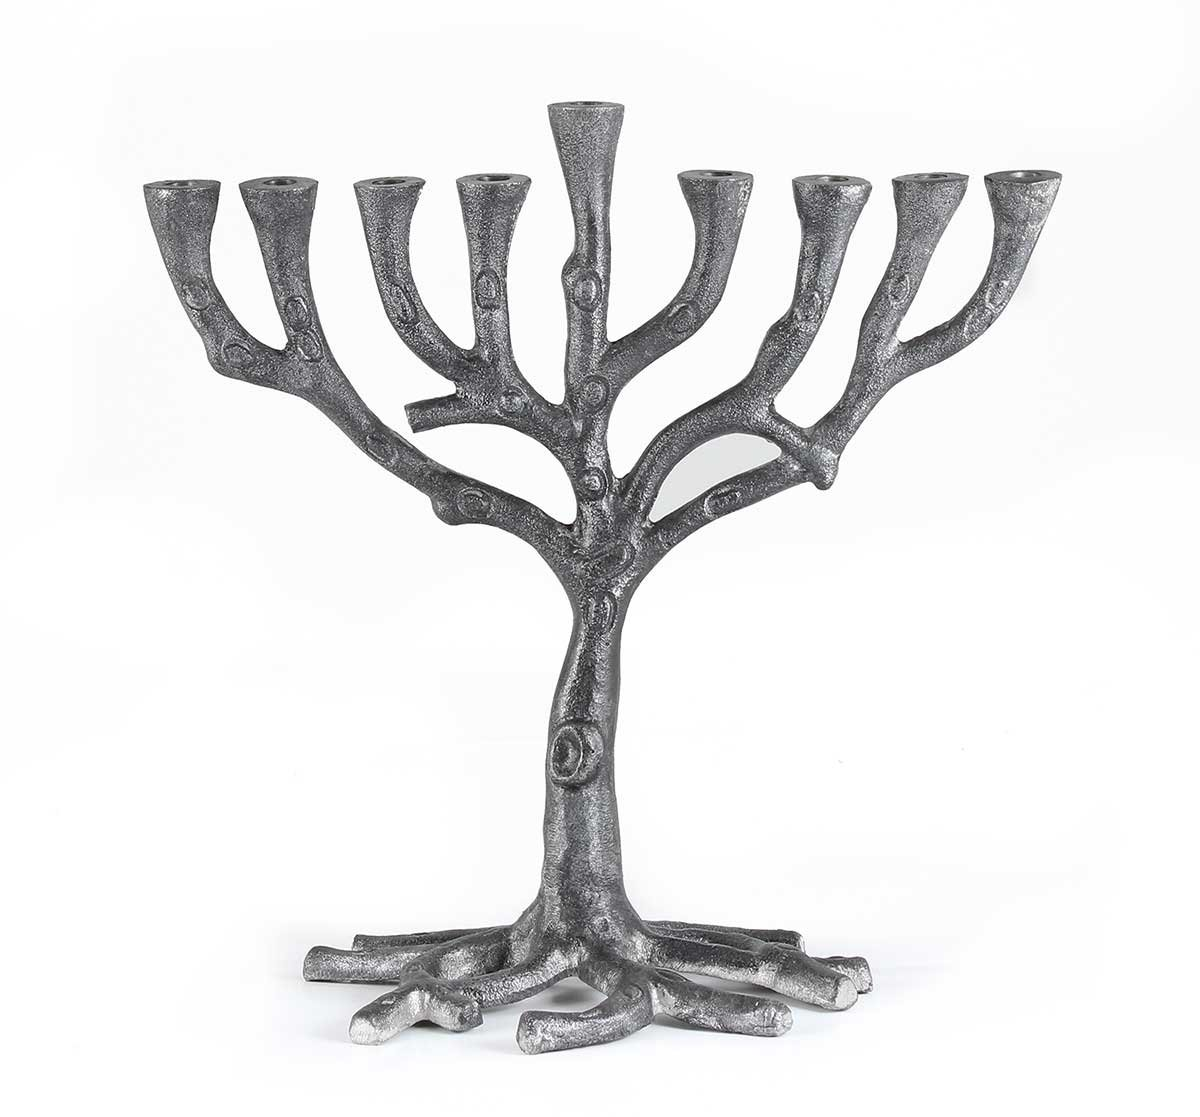 Zion Judaica Hanukkah Menorah Silver Tone Metal Tree of Life Style Zion Judaica Ltd 9802